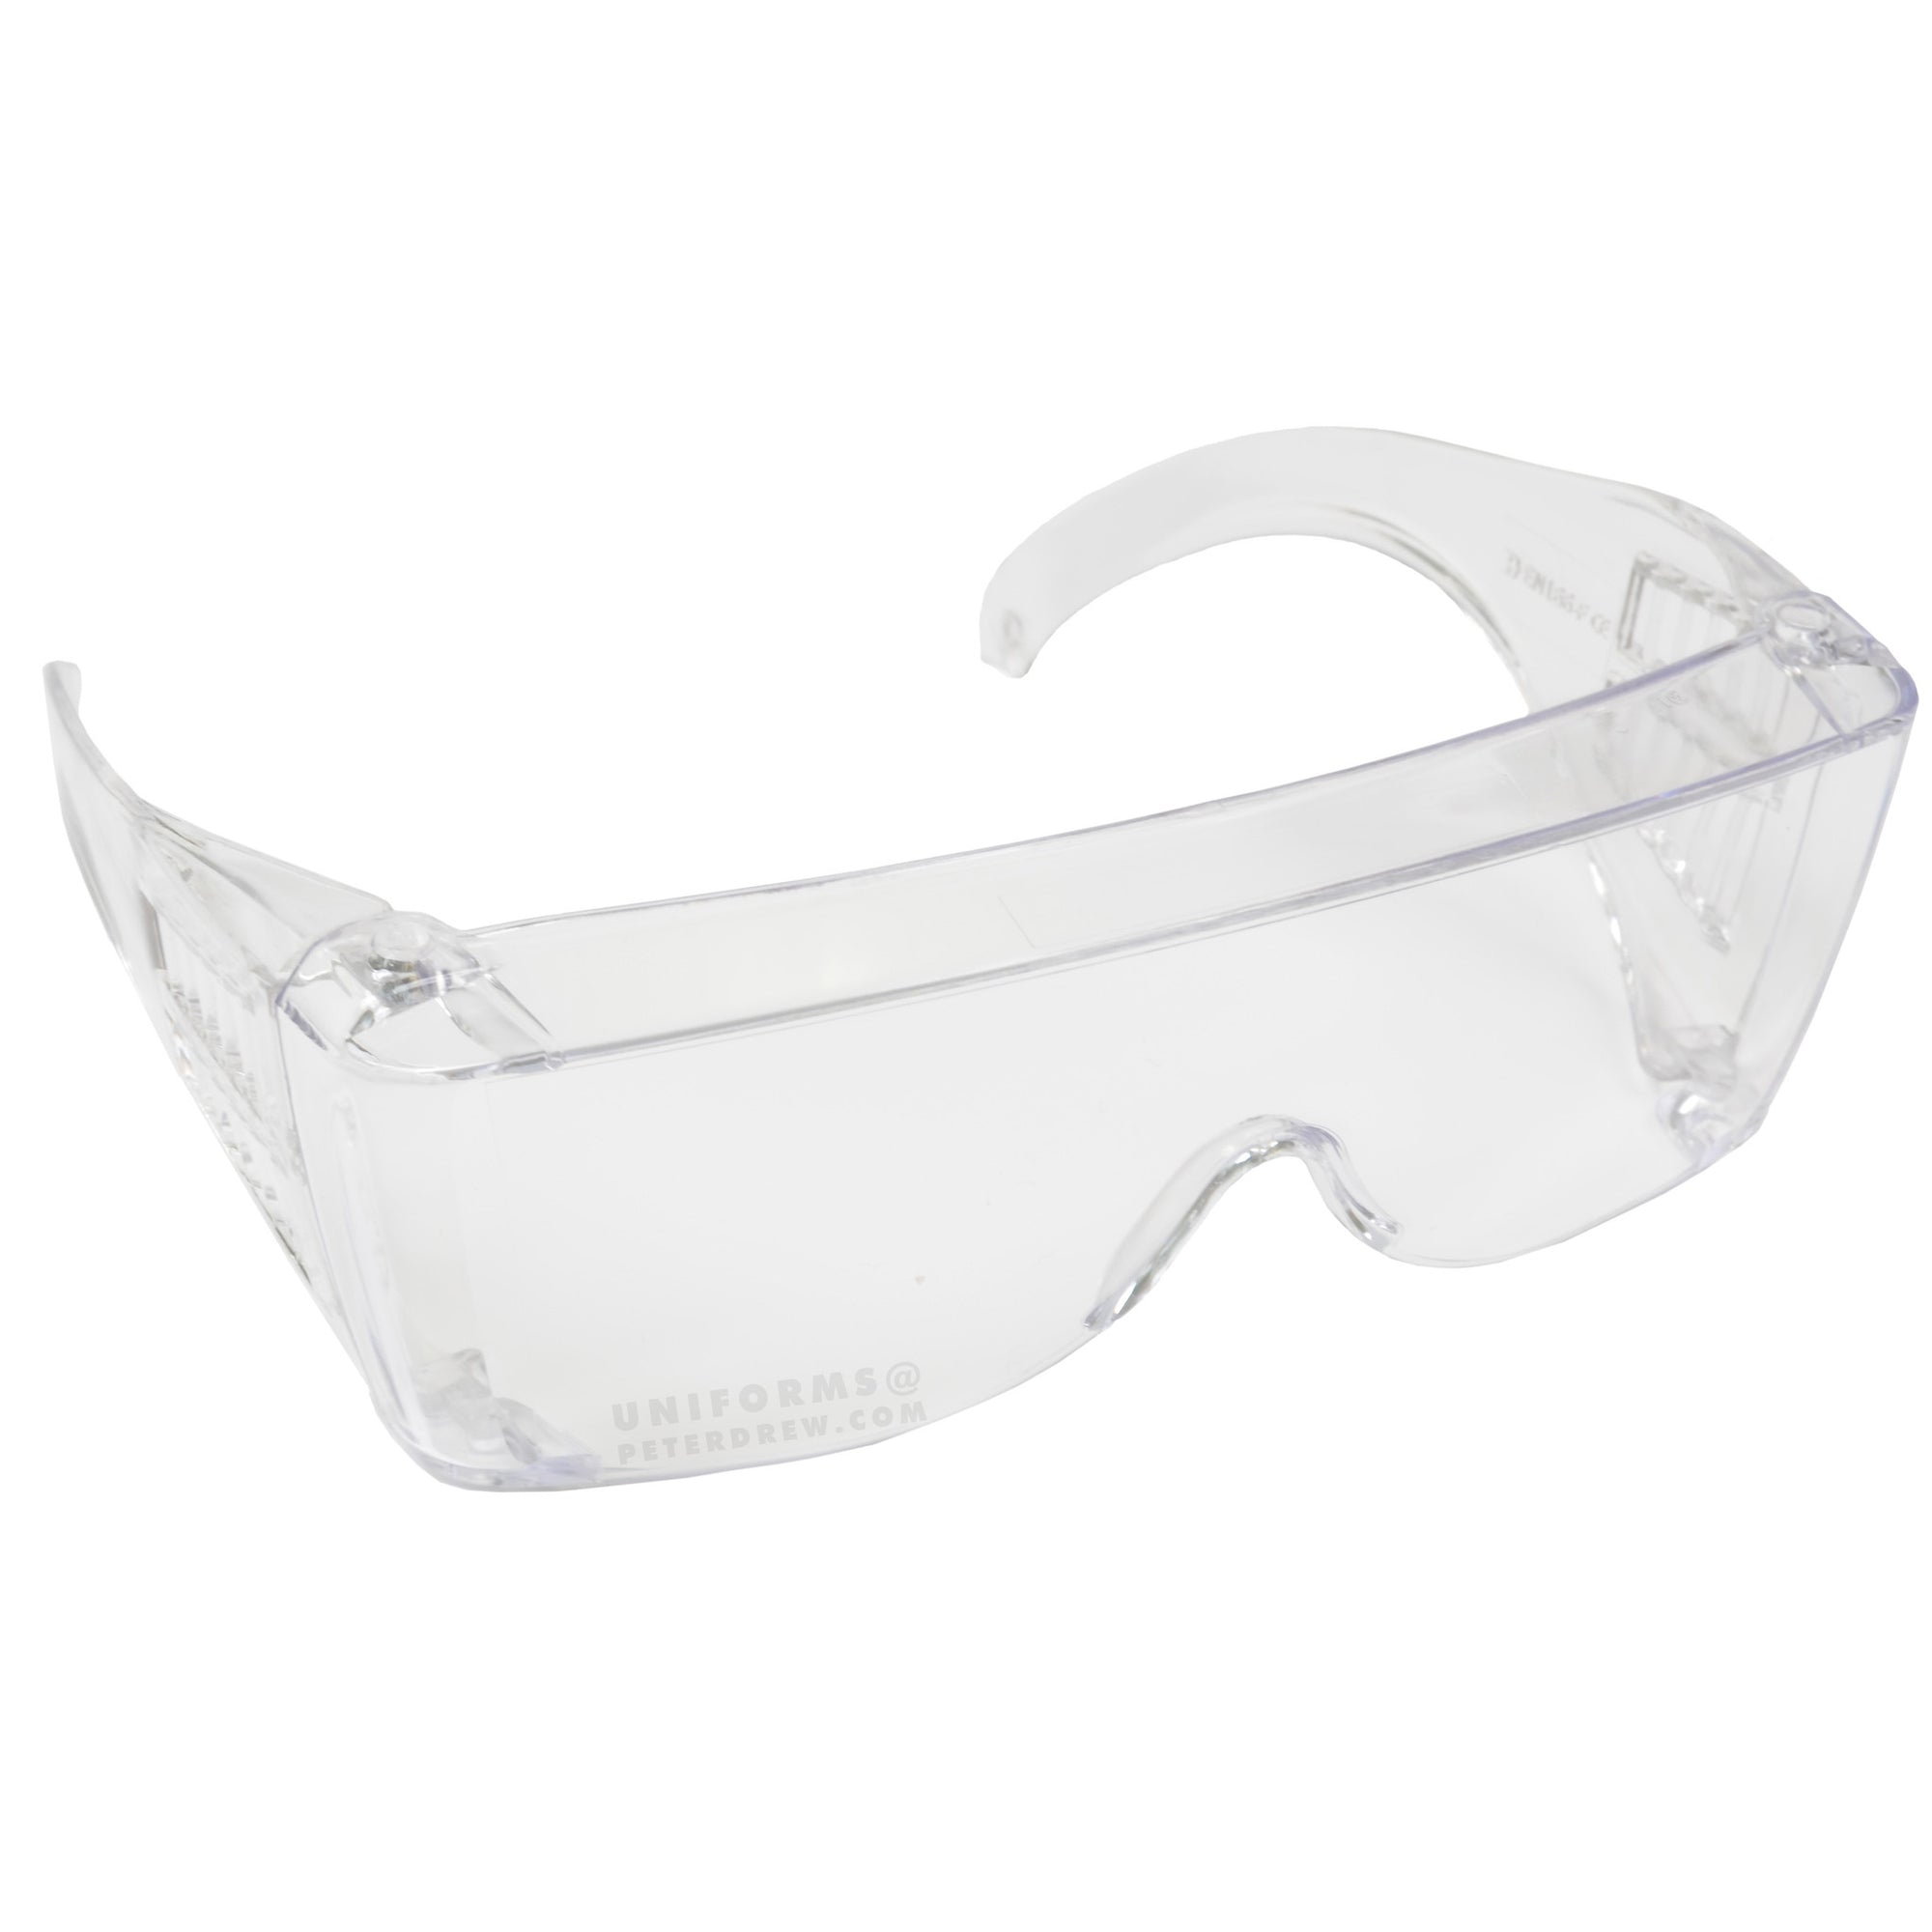 Safety Goggles - peterdrew.com